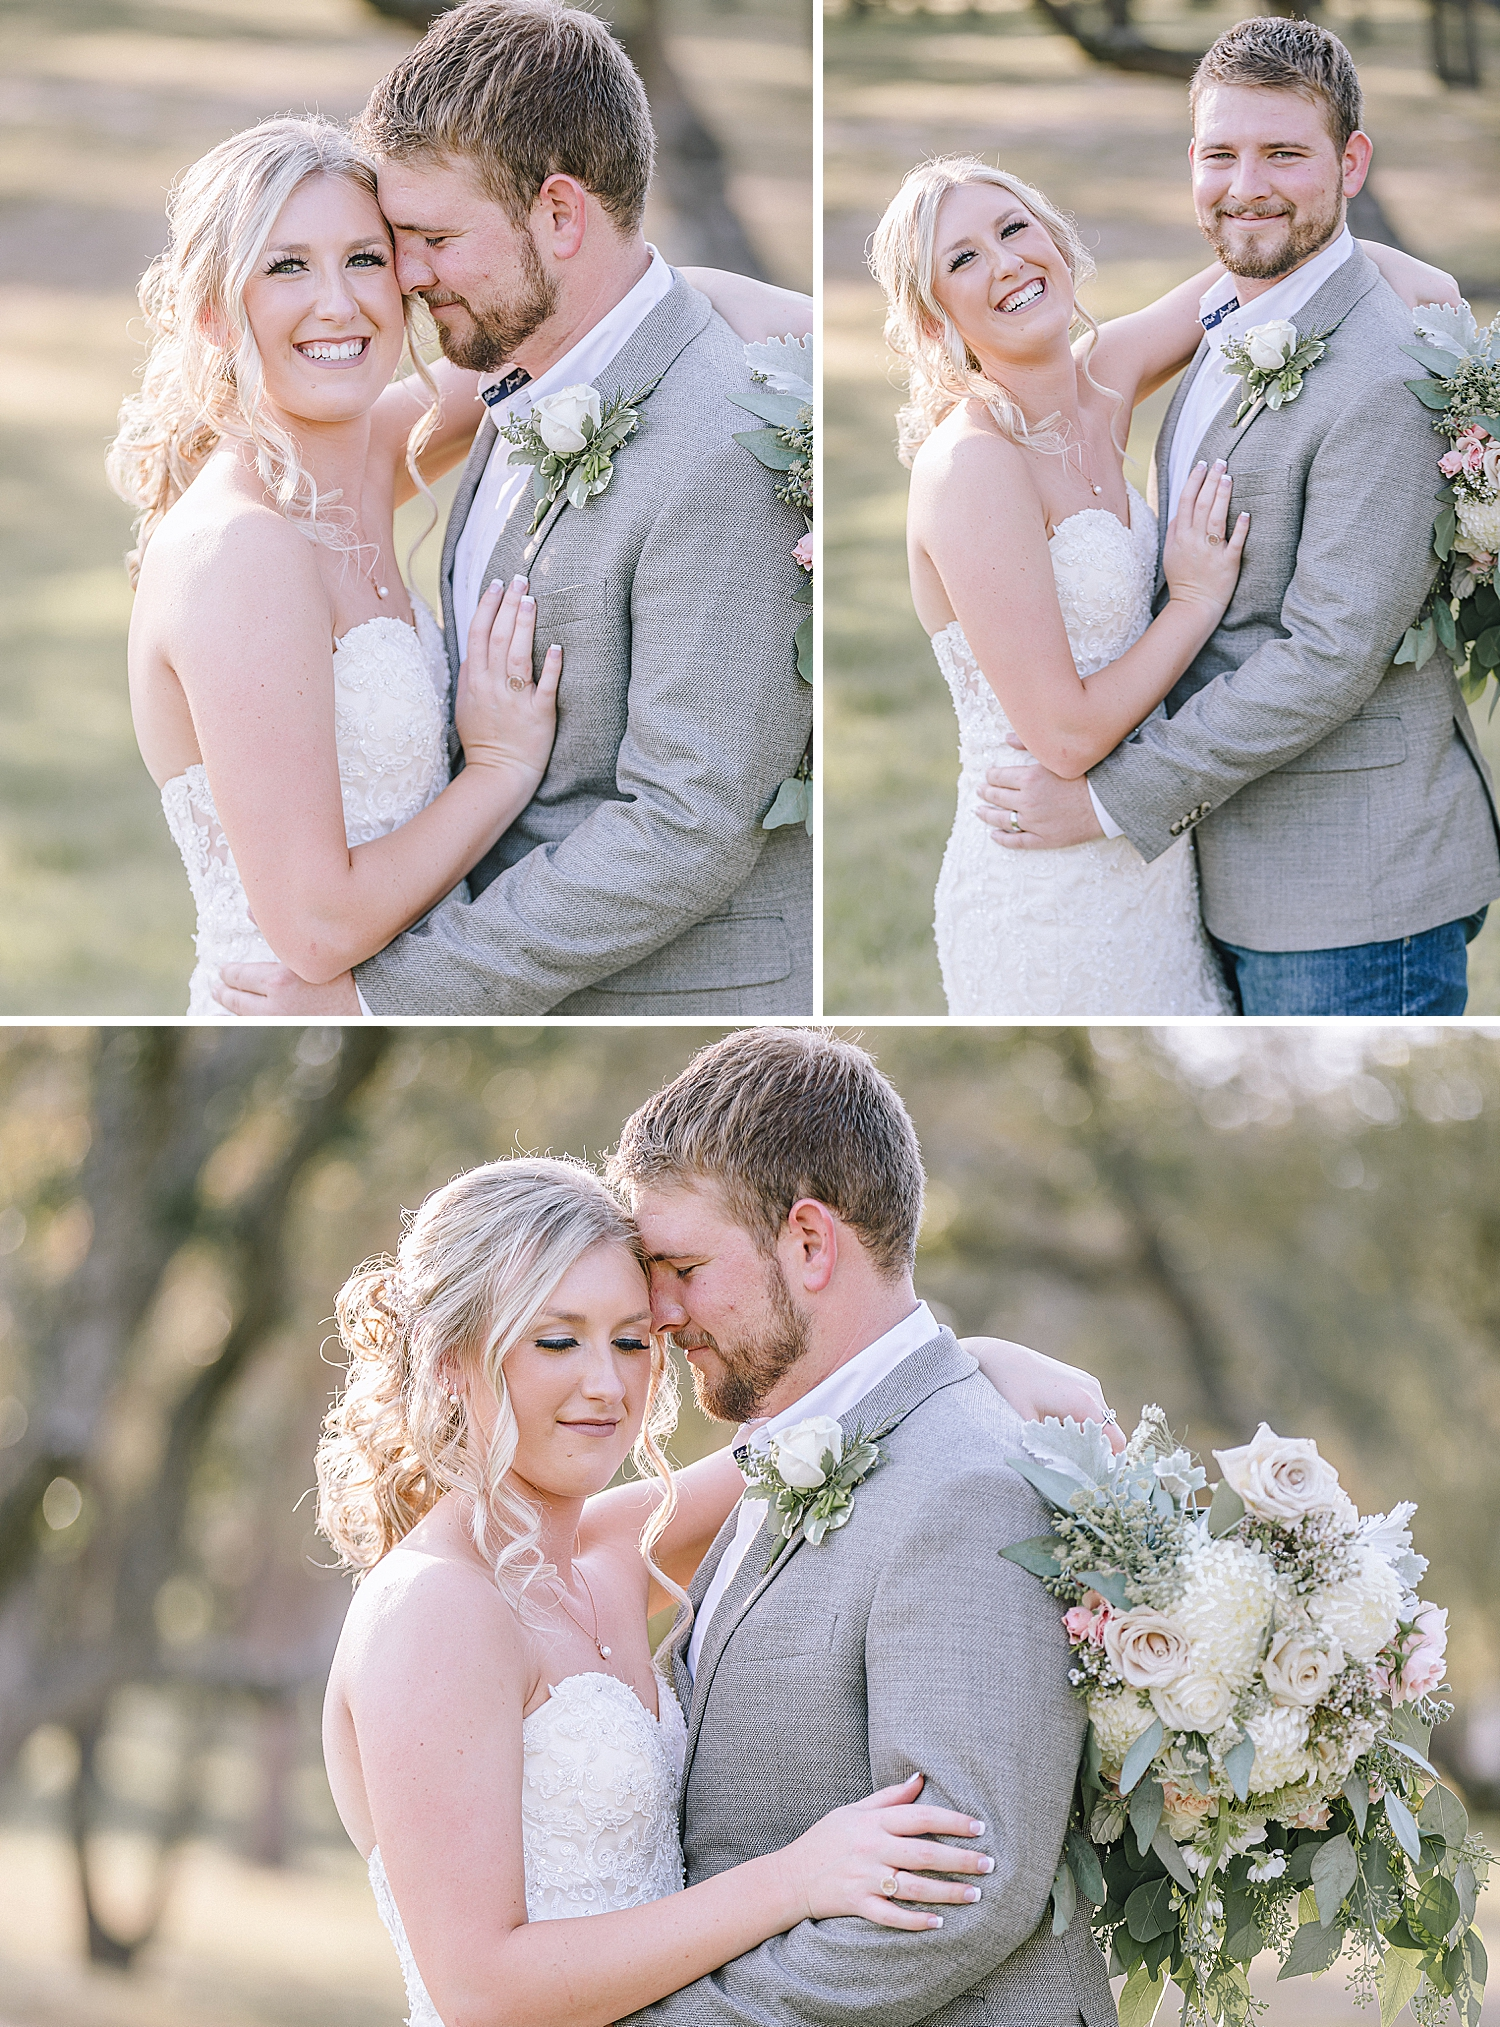 Rackler-Ranch-LaVernia-Texas-Wedding-Carly-Barton-Photography_0103.jpg